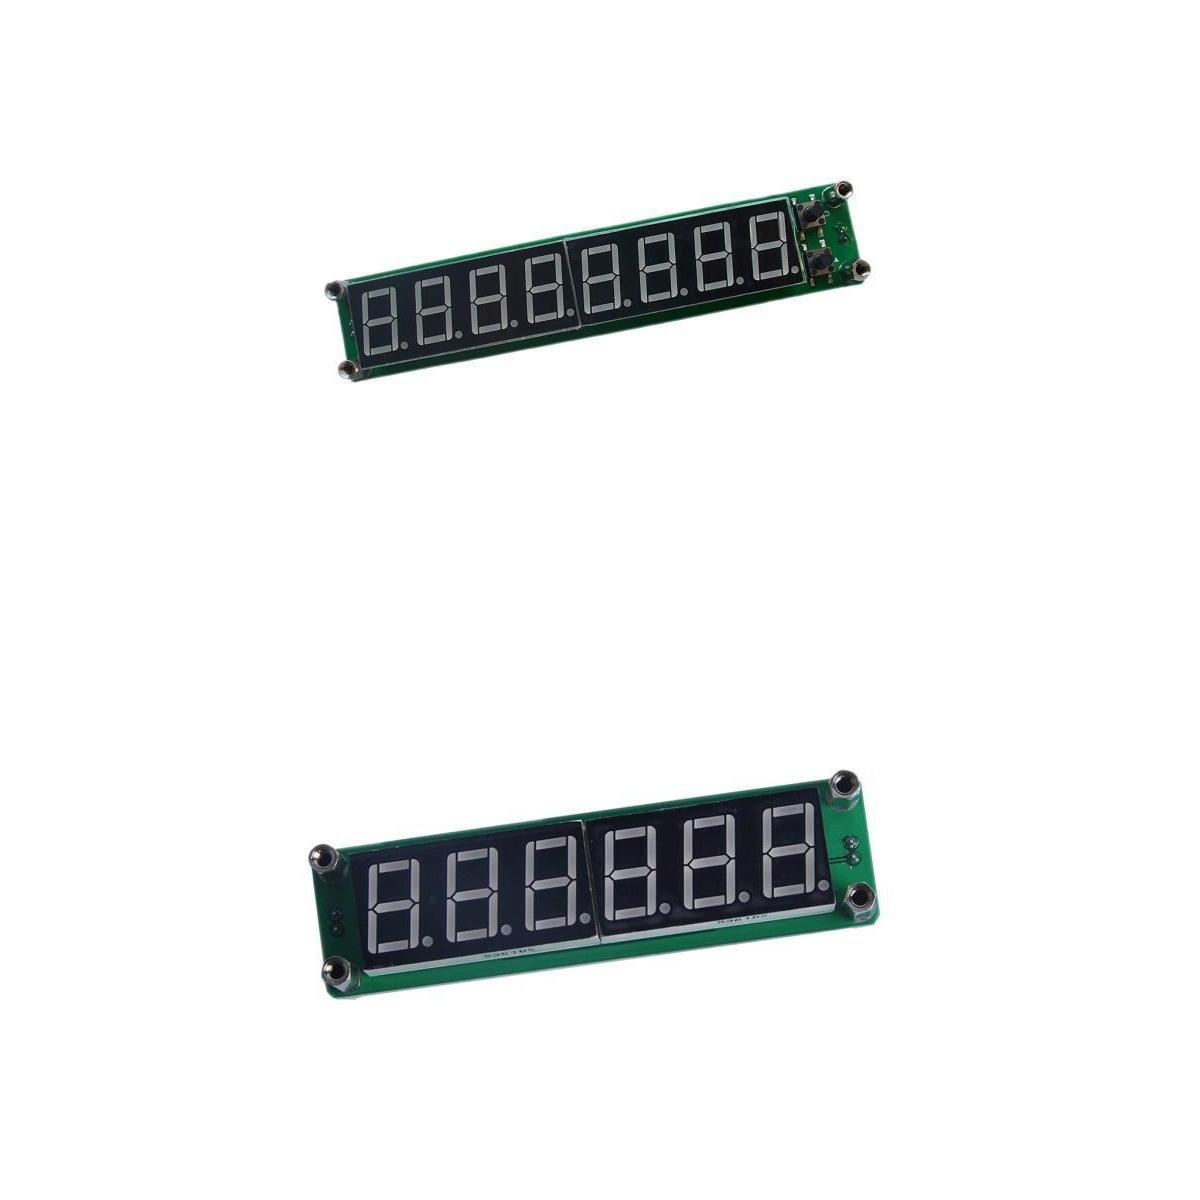 Fenteer 6LED and 8LED Digital Display Signal Frequency Counter RF Meter Module Green 1000MHz